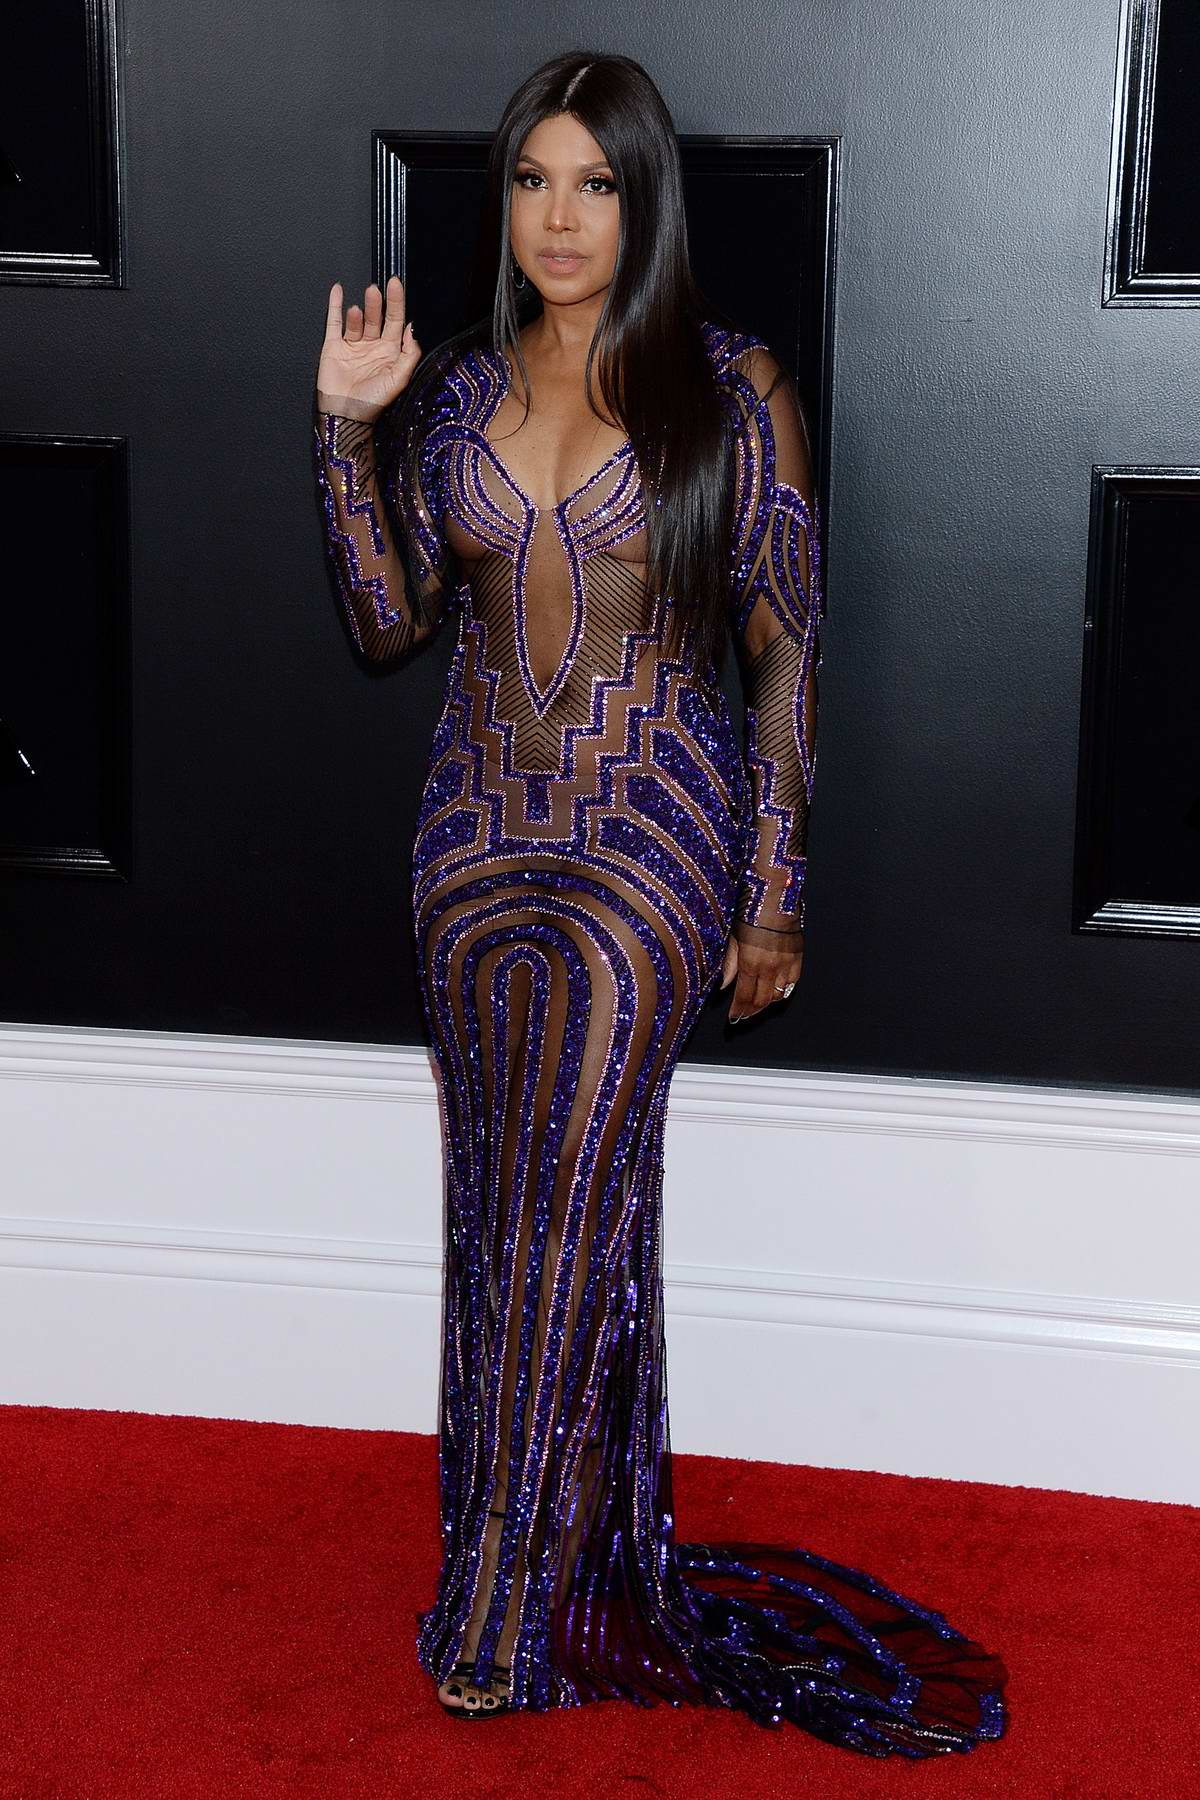 Toni Braxton attends the 61st Annual GRAMMY Awards (2019 GRAMMYs) at Staples Center in Los Angeles